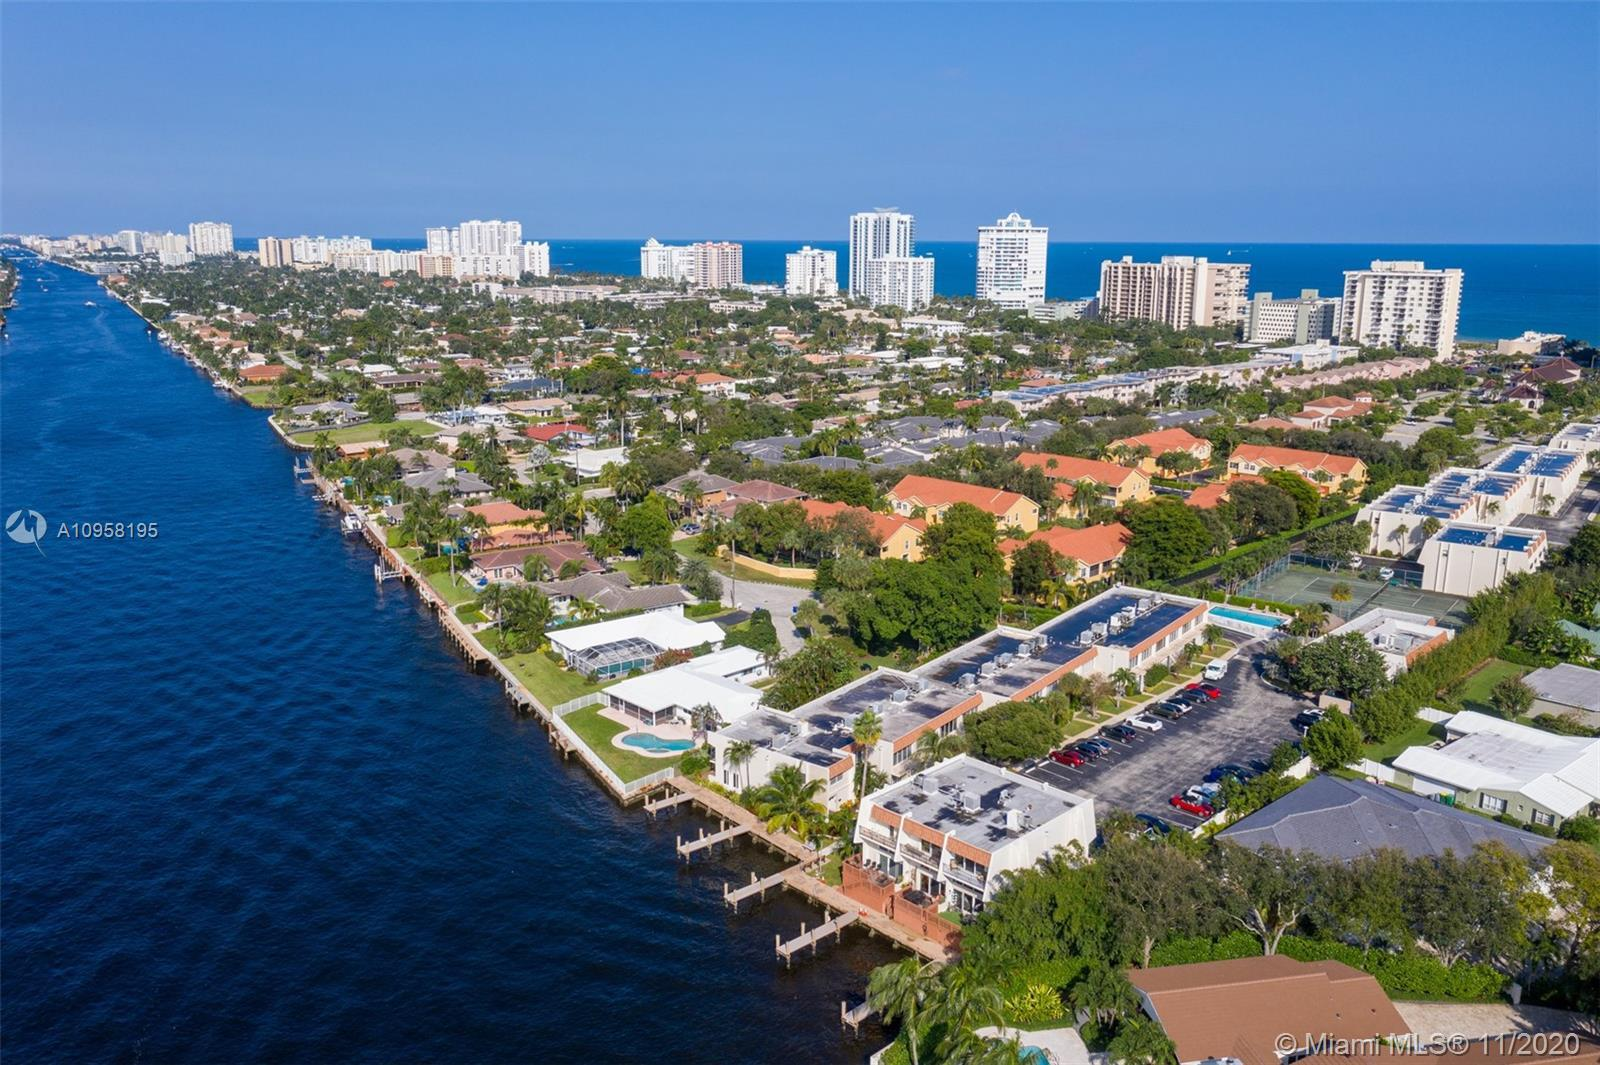 Located in Lauderdale By The Sea. This two-story 2 bedroom 2 and a half bathroom townhome features a